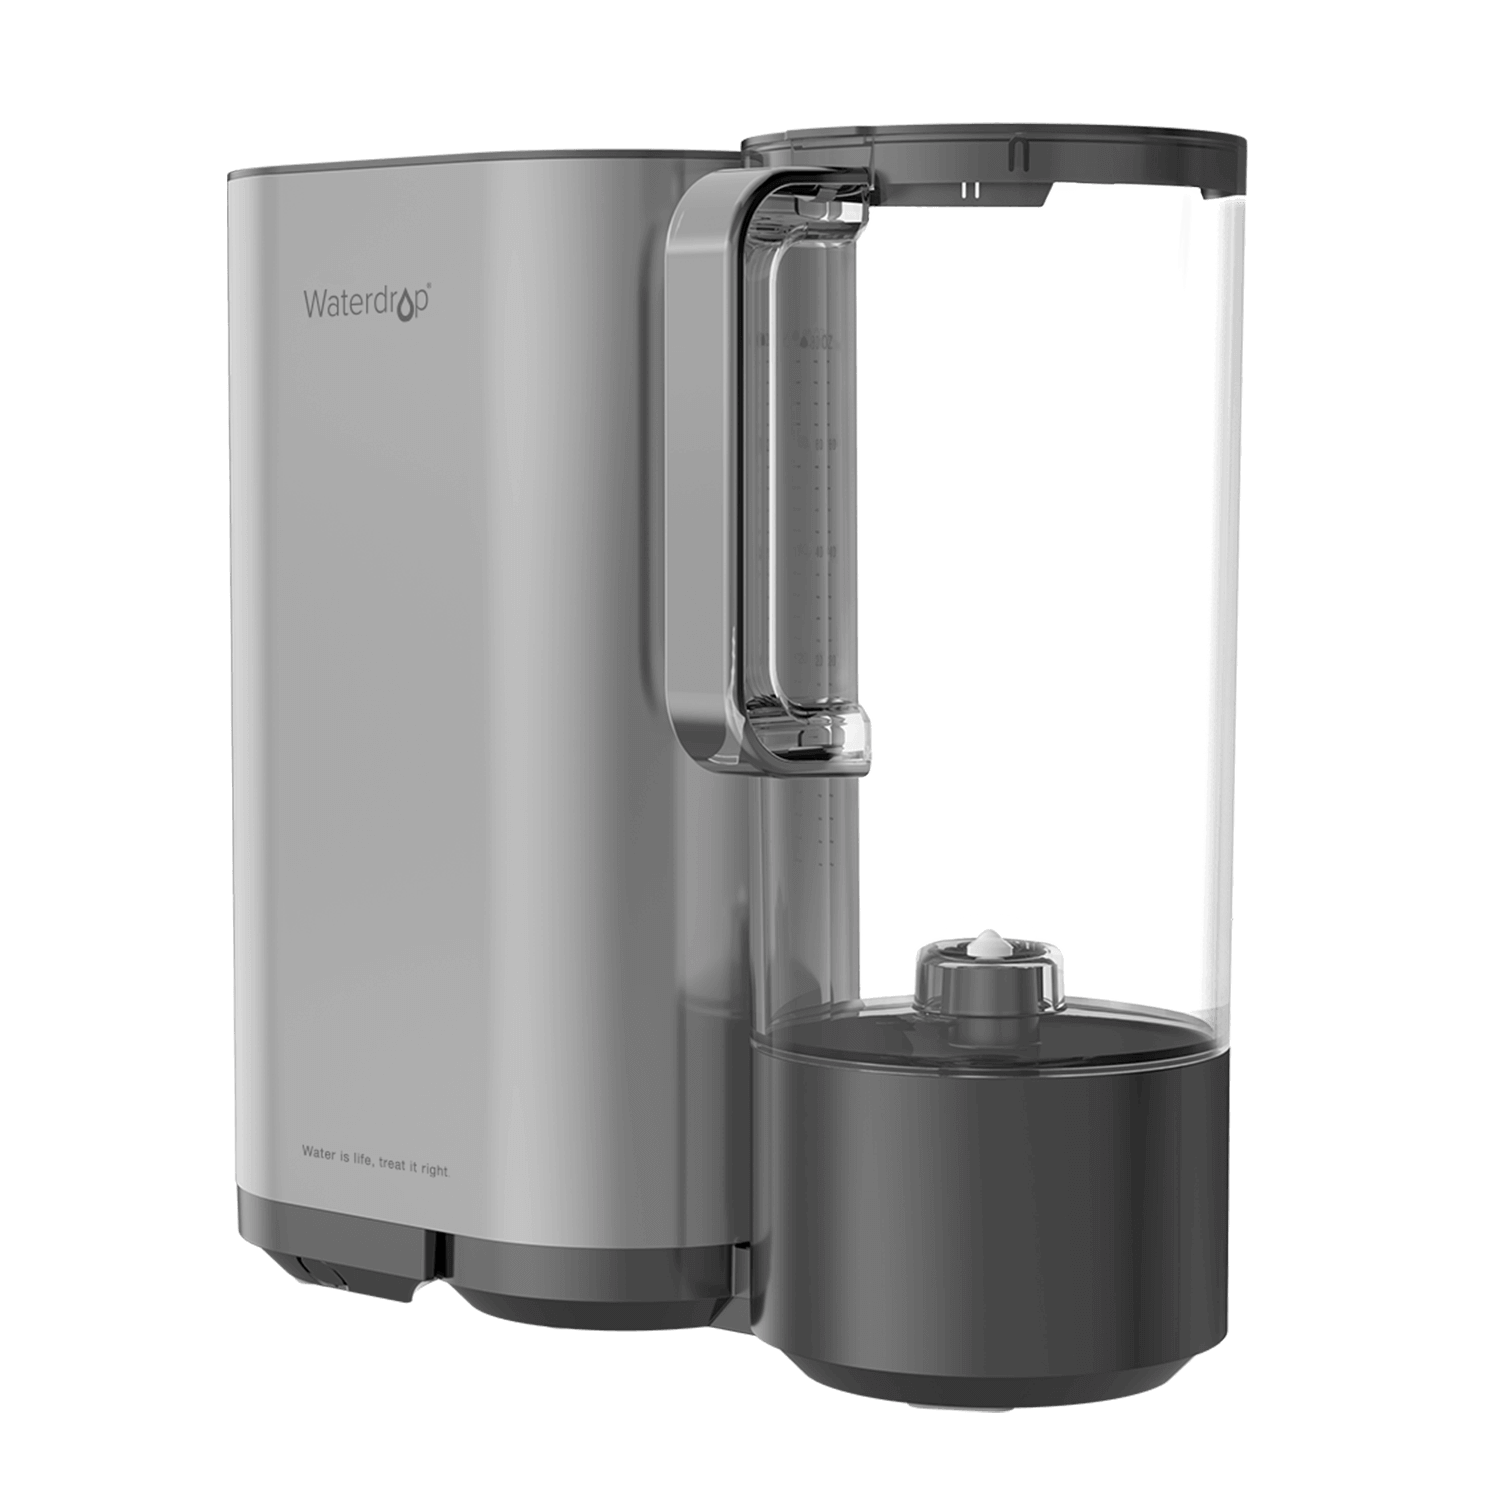 Countertop Reverse Osmosis System with Portable Water Pitcher